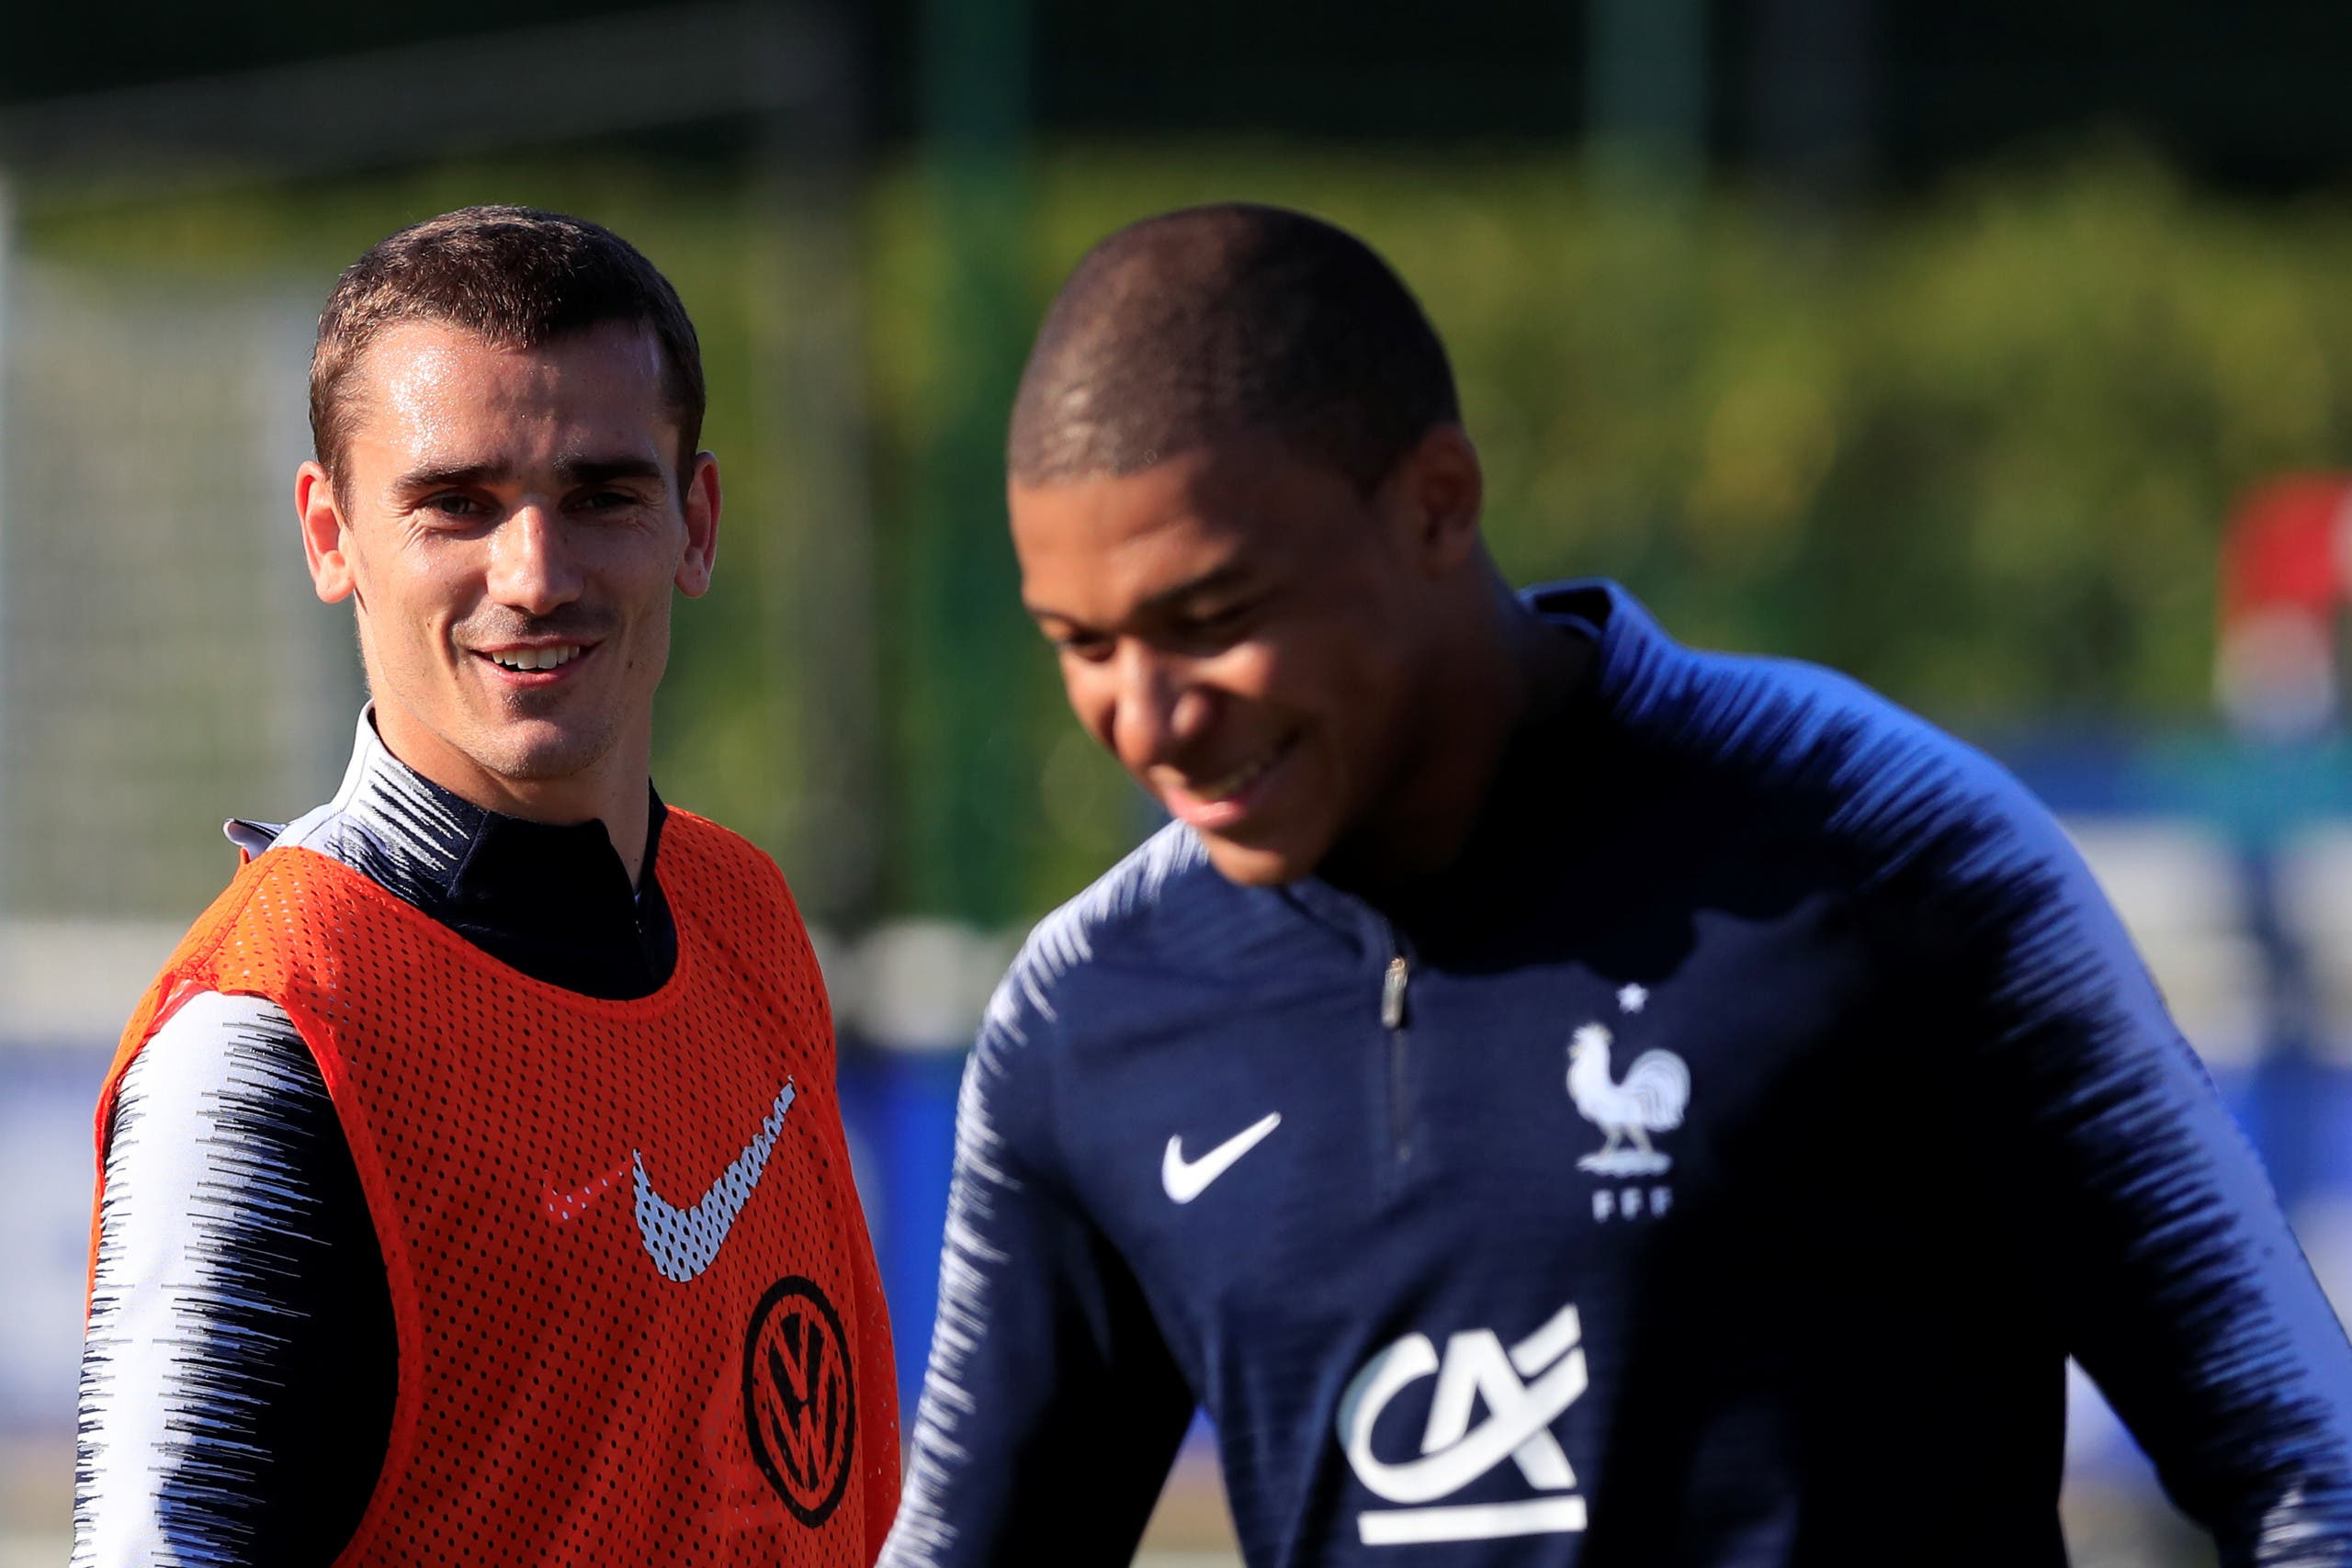 Mbappe and Griezmann during training. (Reuters)